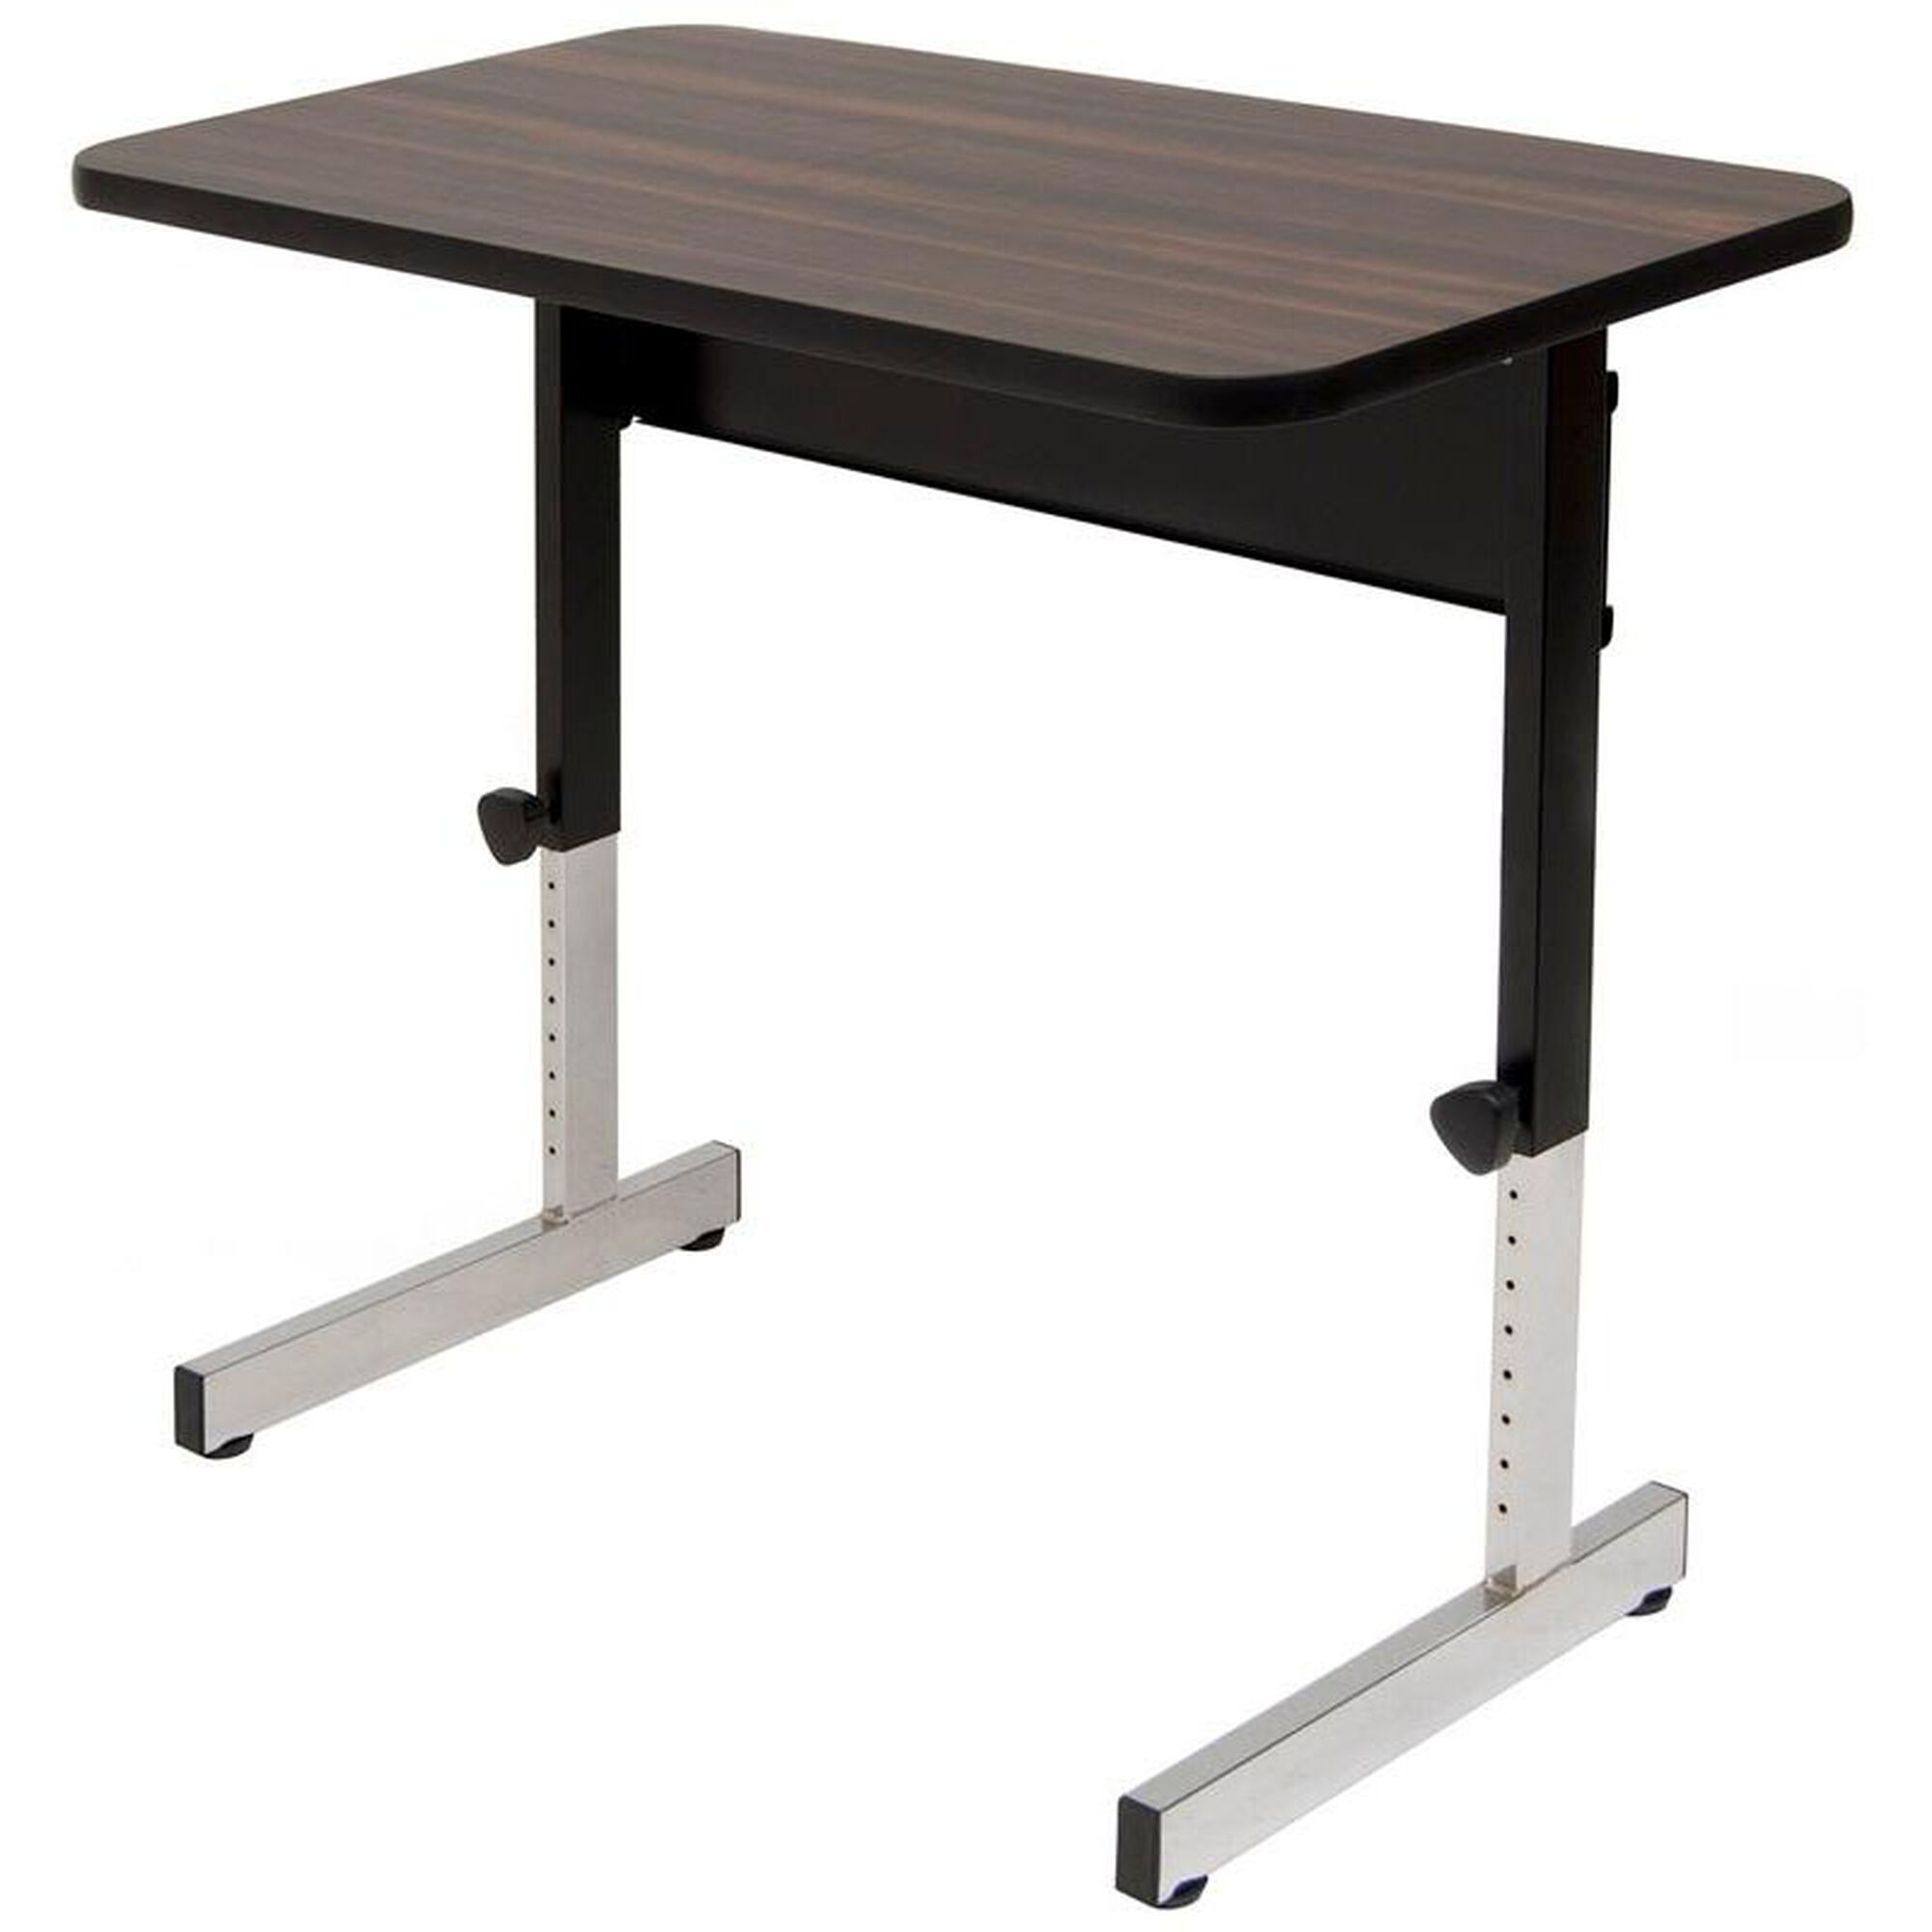 Adapta Work Station Height Adjustable Table with Walnut Top - Black